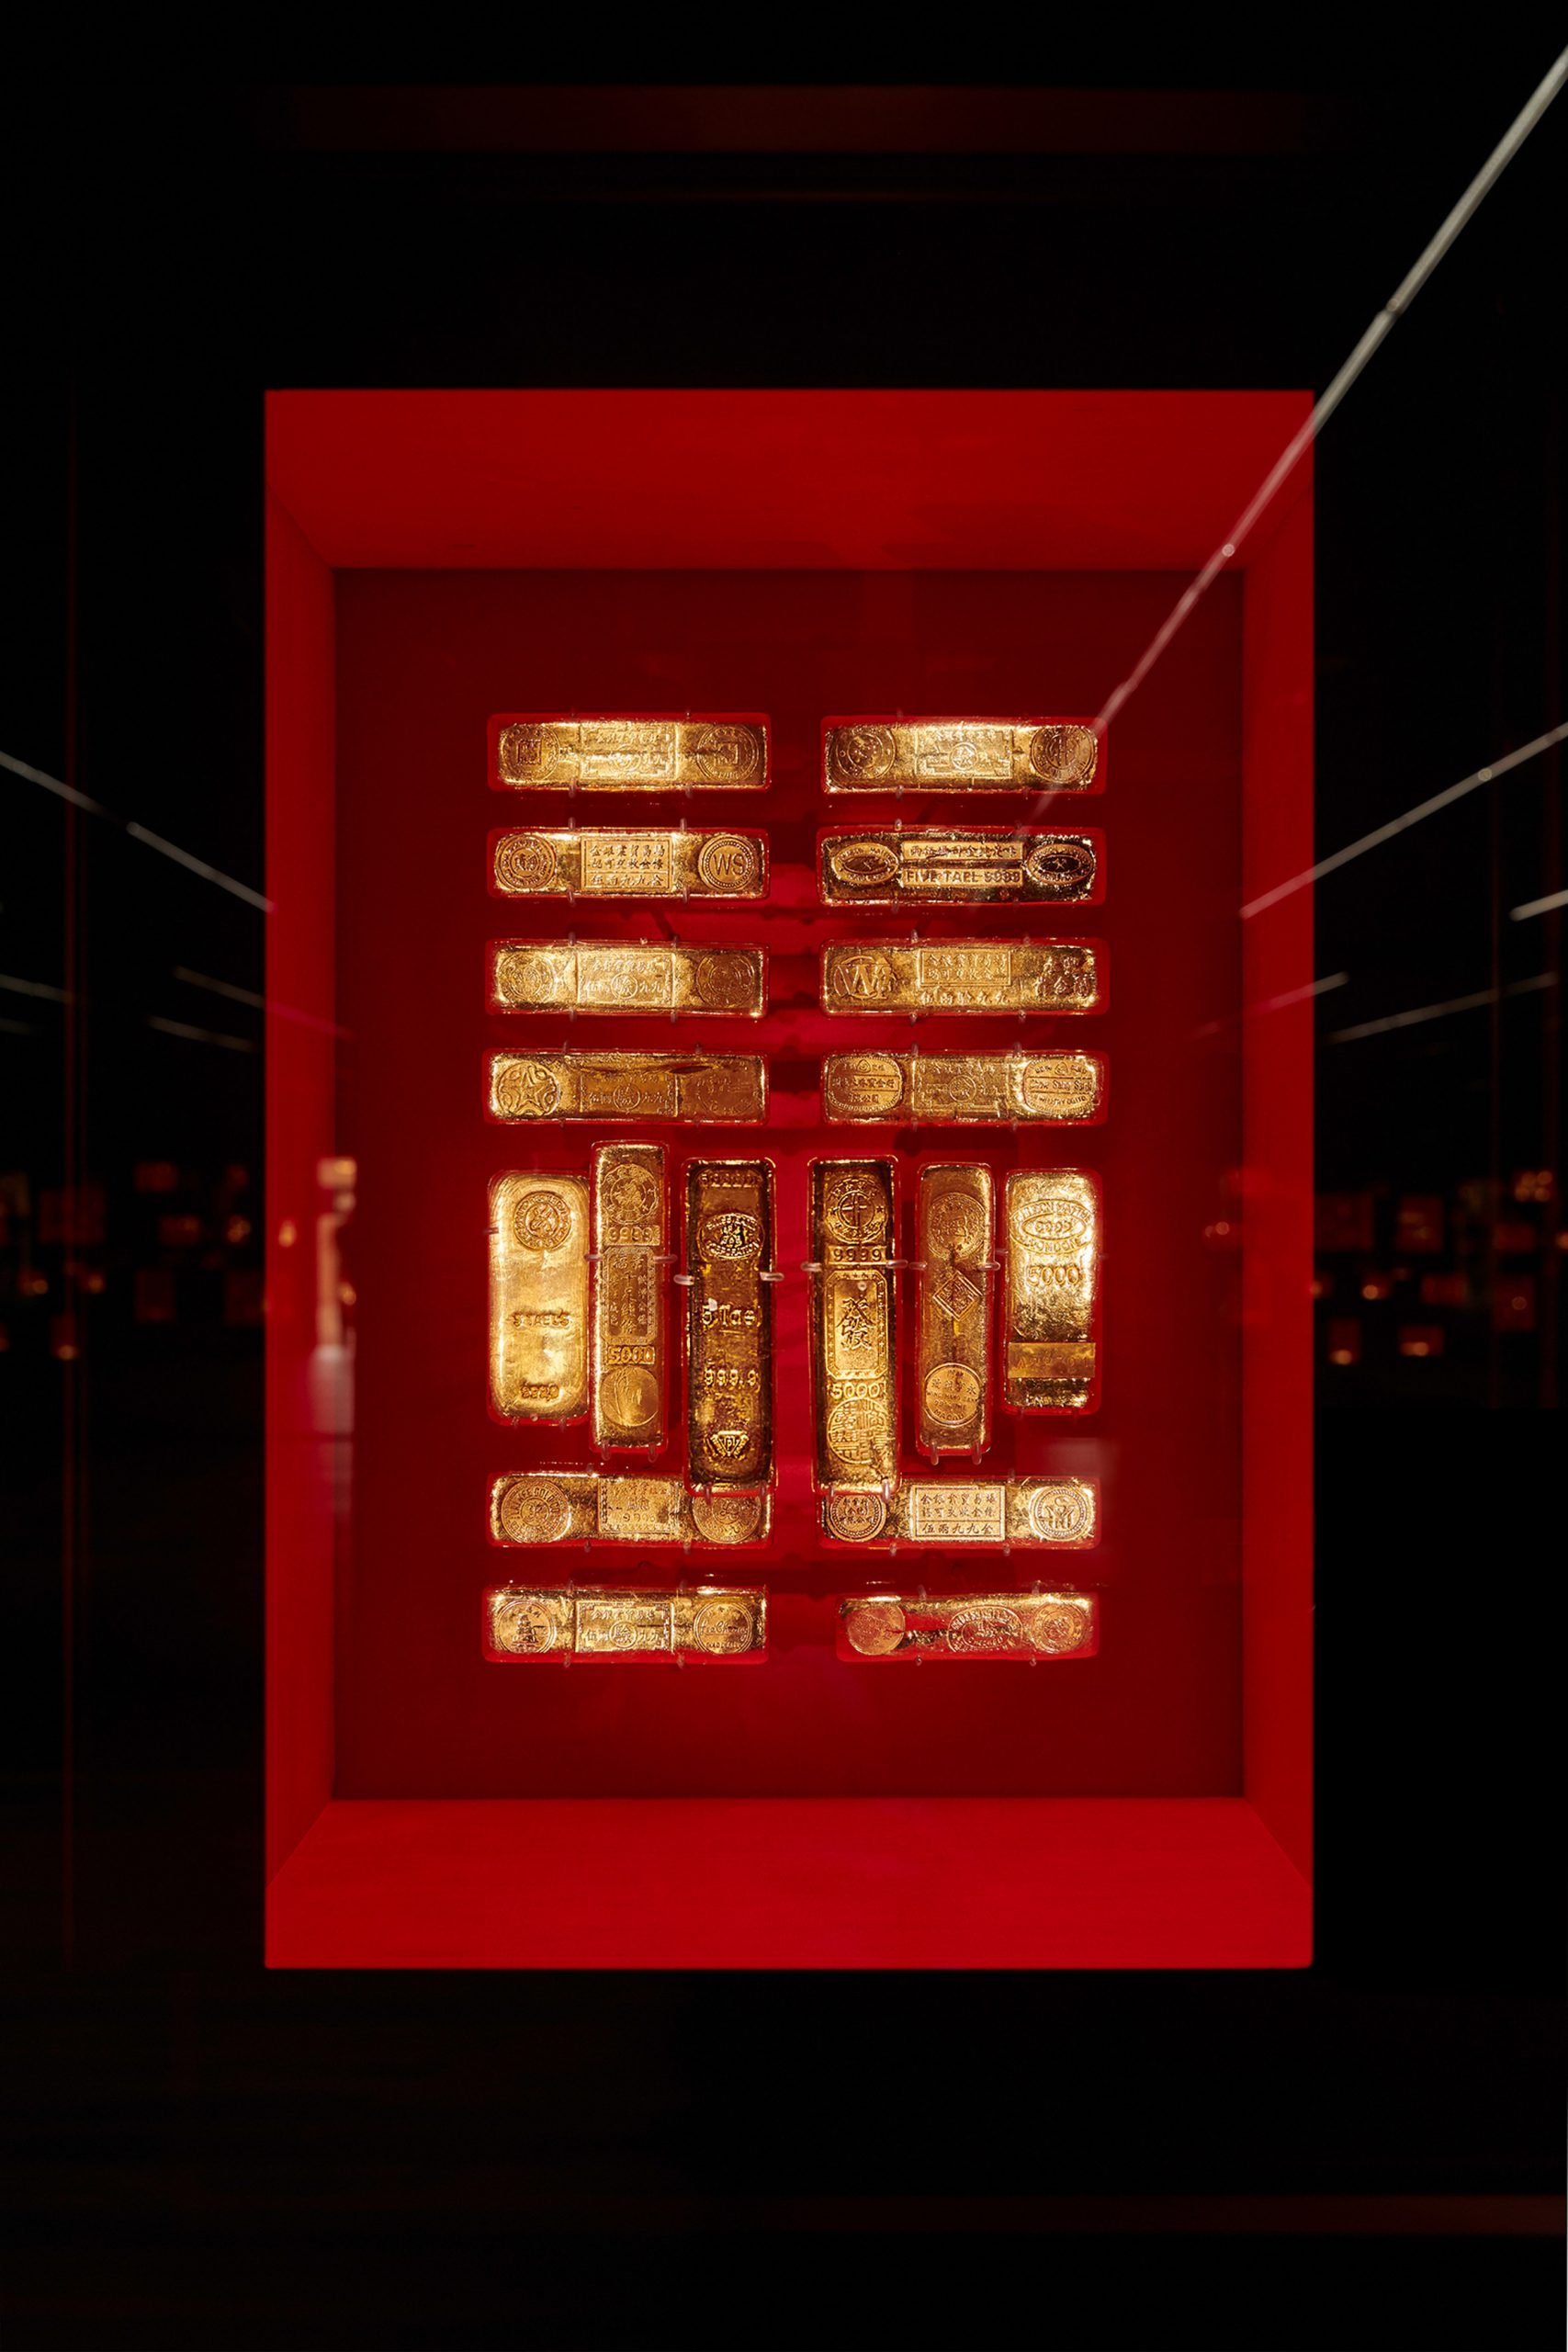 Gold bullion against red silk The Rothschild Collection displayed by Pfarré Lighting Design at the Goldkammer Museum in Frankfurt